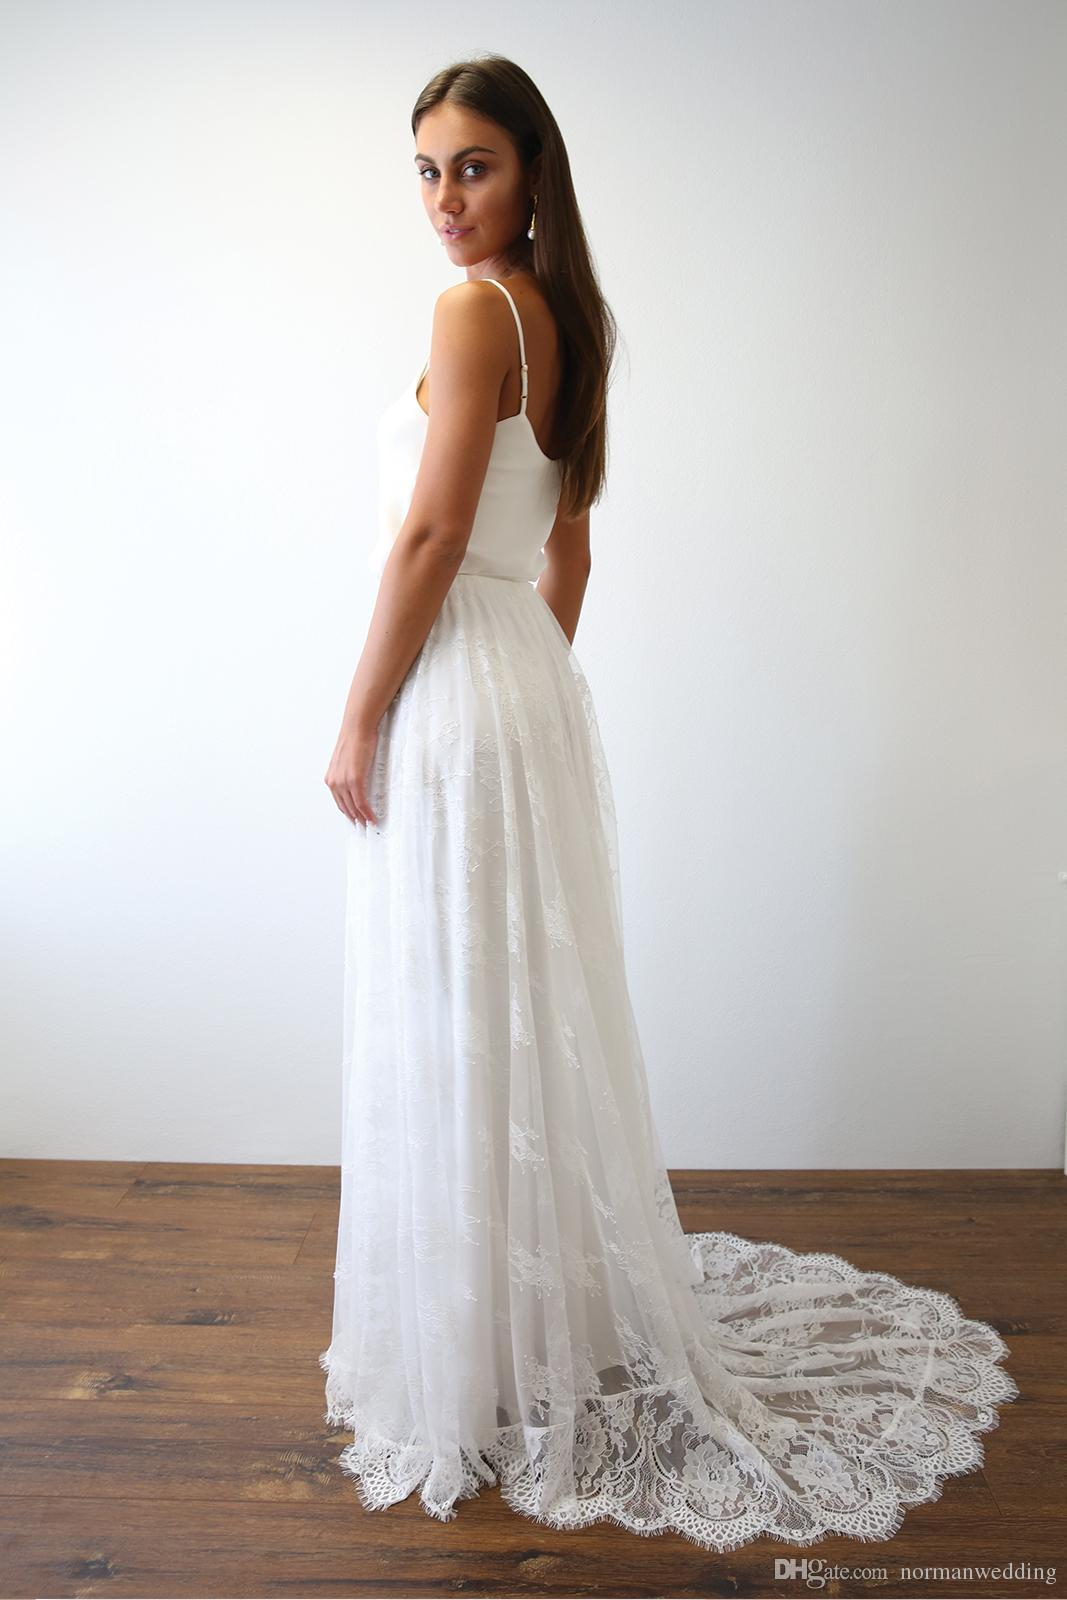 Discount modern spaghetti straps beach wedding dresses 2017 new discount modern spaghetti straps beach wedding dresses 2017 new arrival sleeveless lace wedding gowns simple bridal gowns for bride usa uk online wedding ombrellifo Gallery